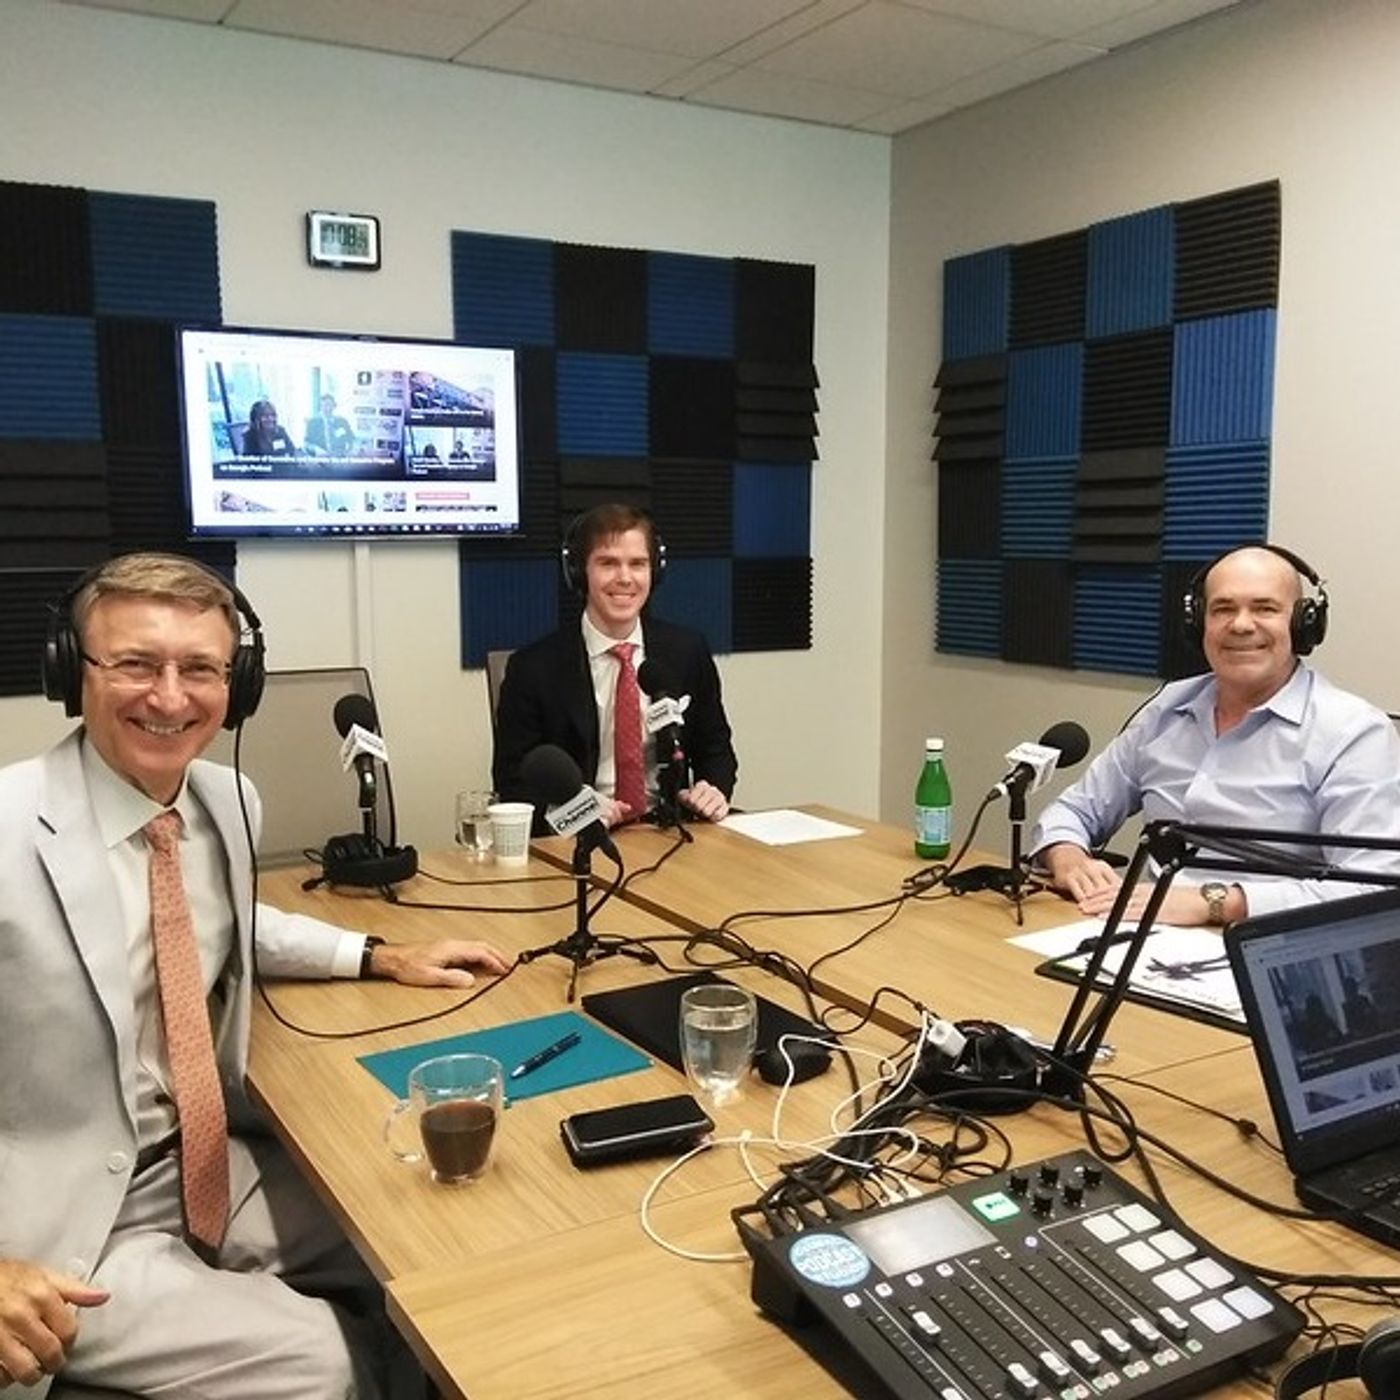 Bill McGill, Atlanta Attorney at Law Magazine and Jake Evans, Holland and Knight on Business Developers Network